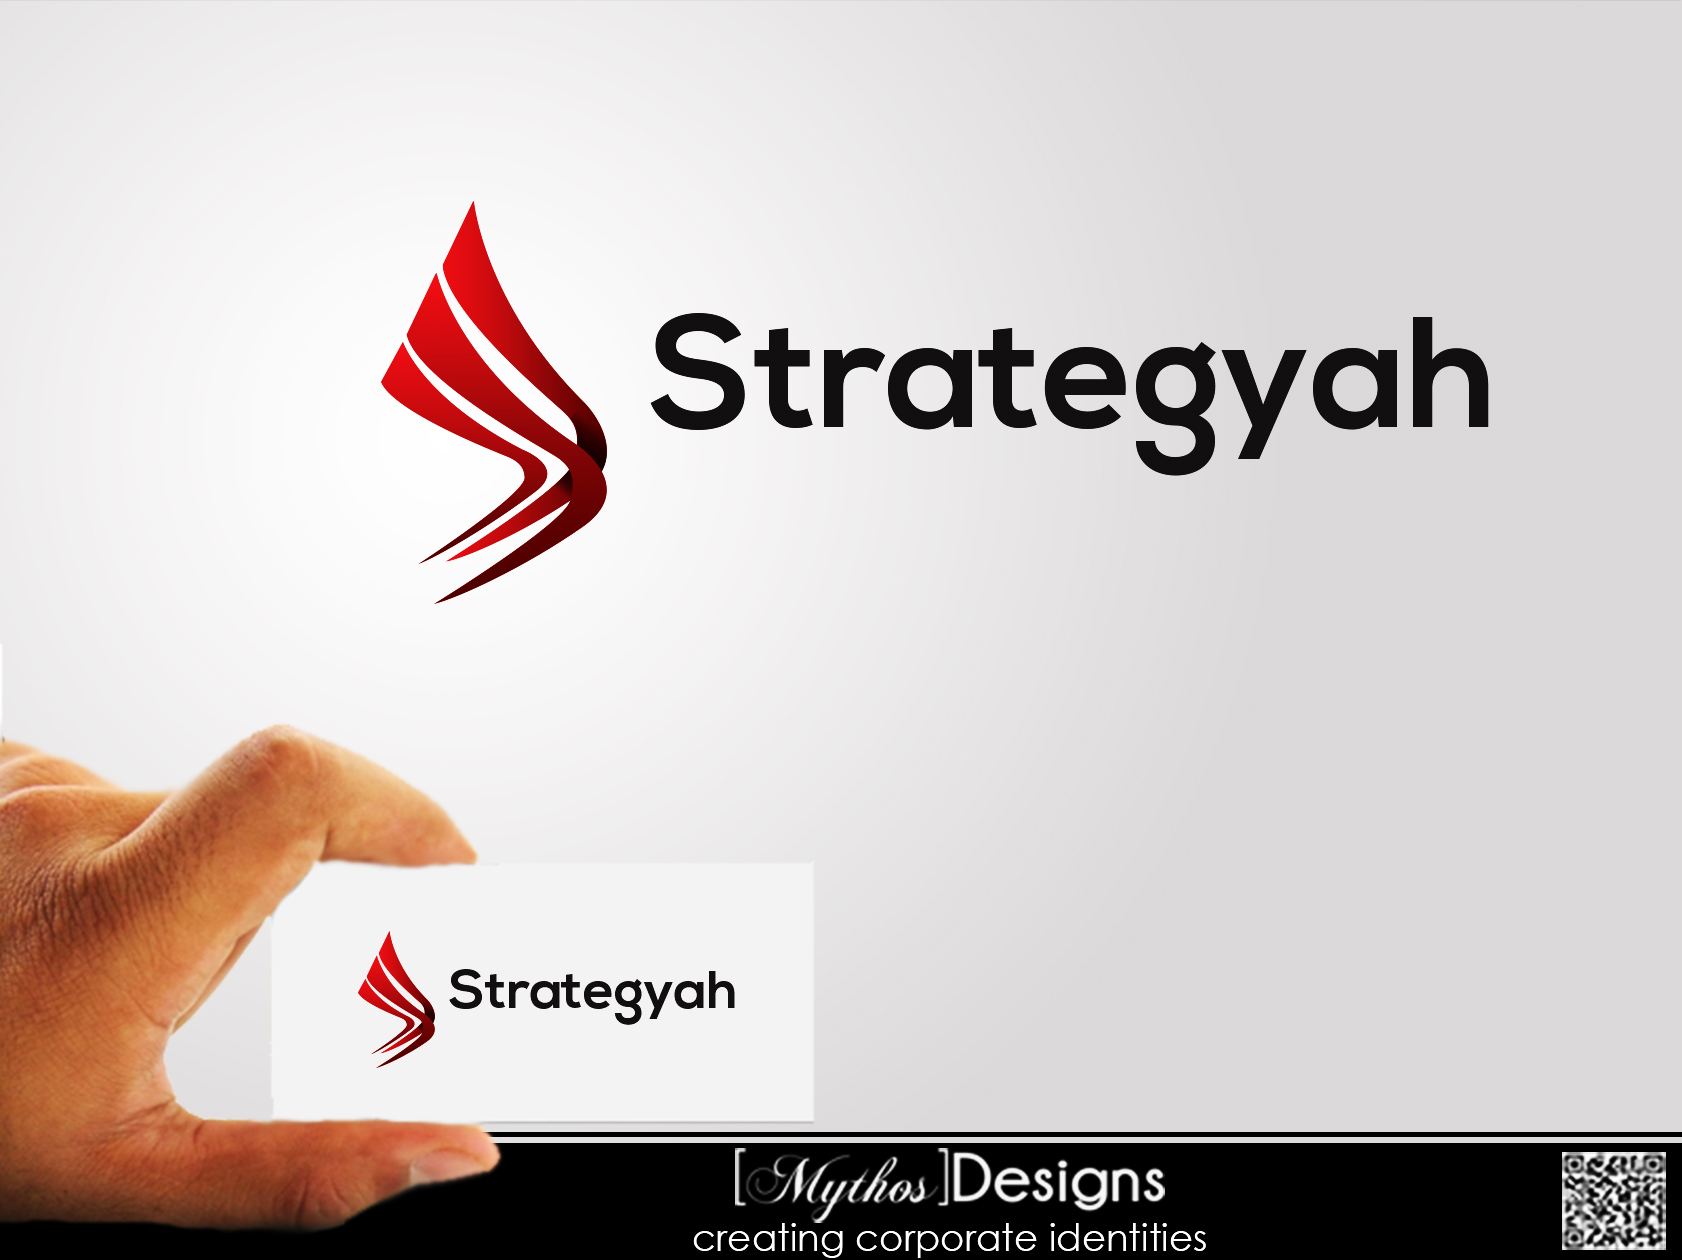 Logo Design by Mythos Designs - Entry No. 7 in the Logo Design Contest Creative Logo Design for Strategyah.